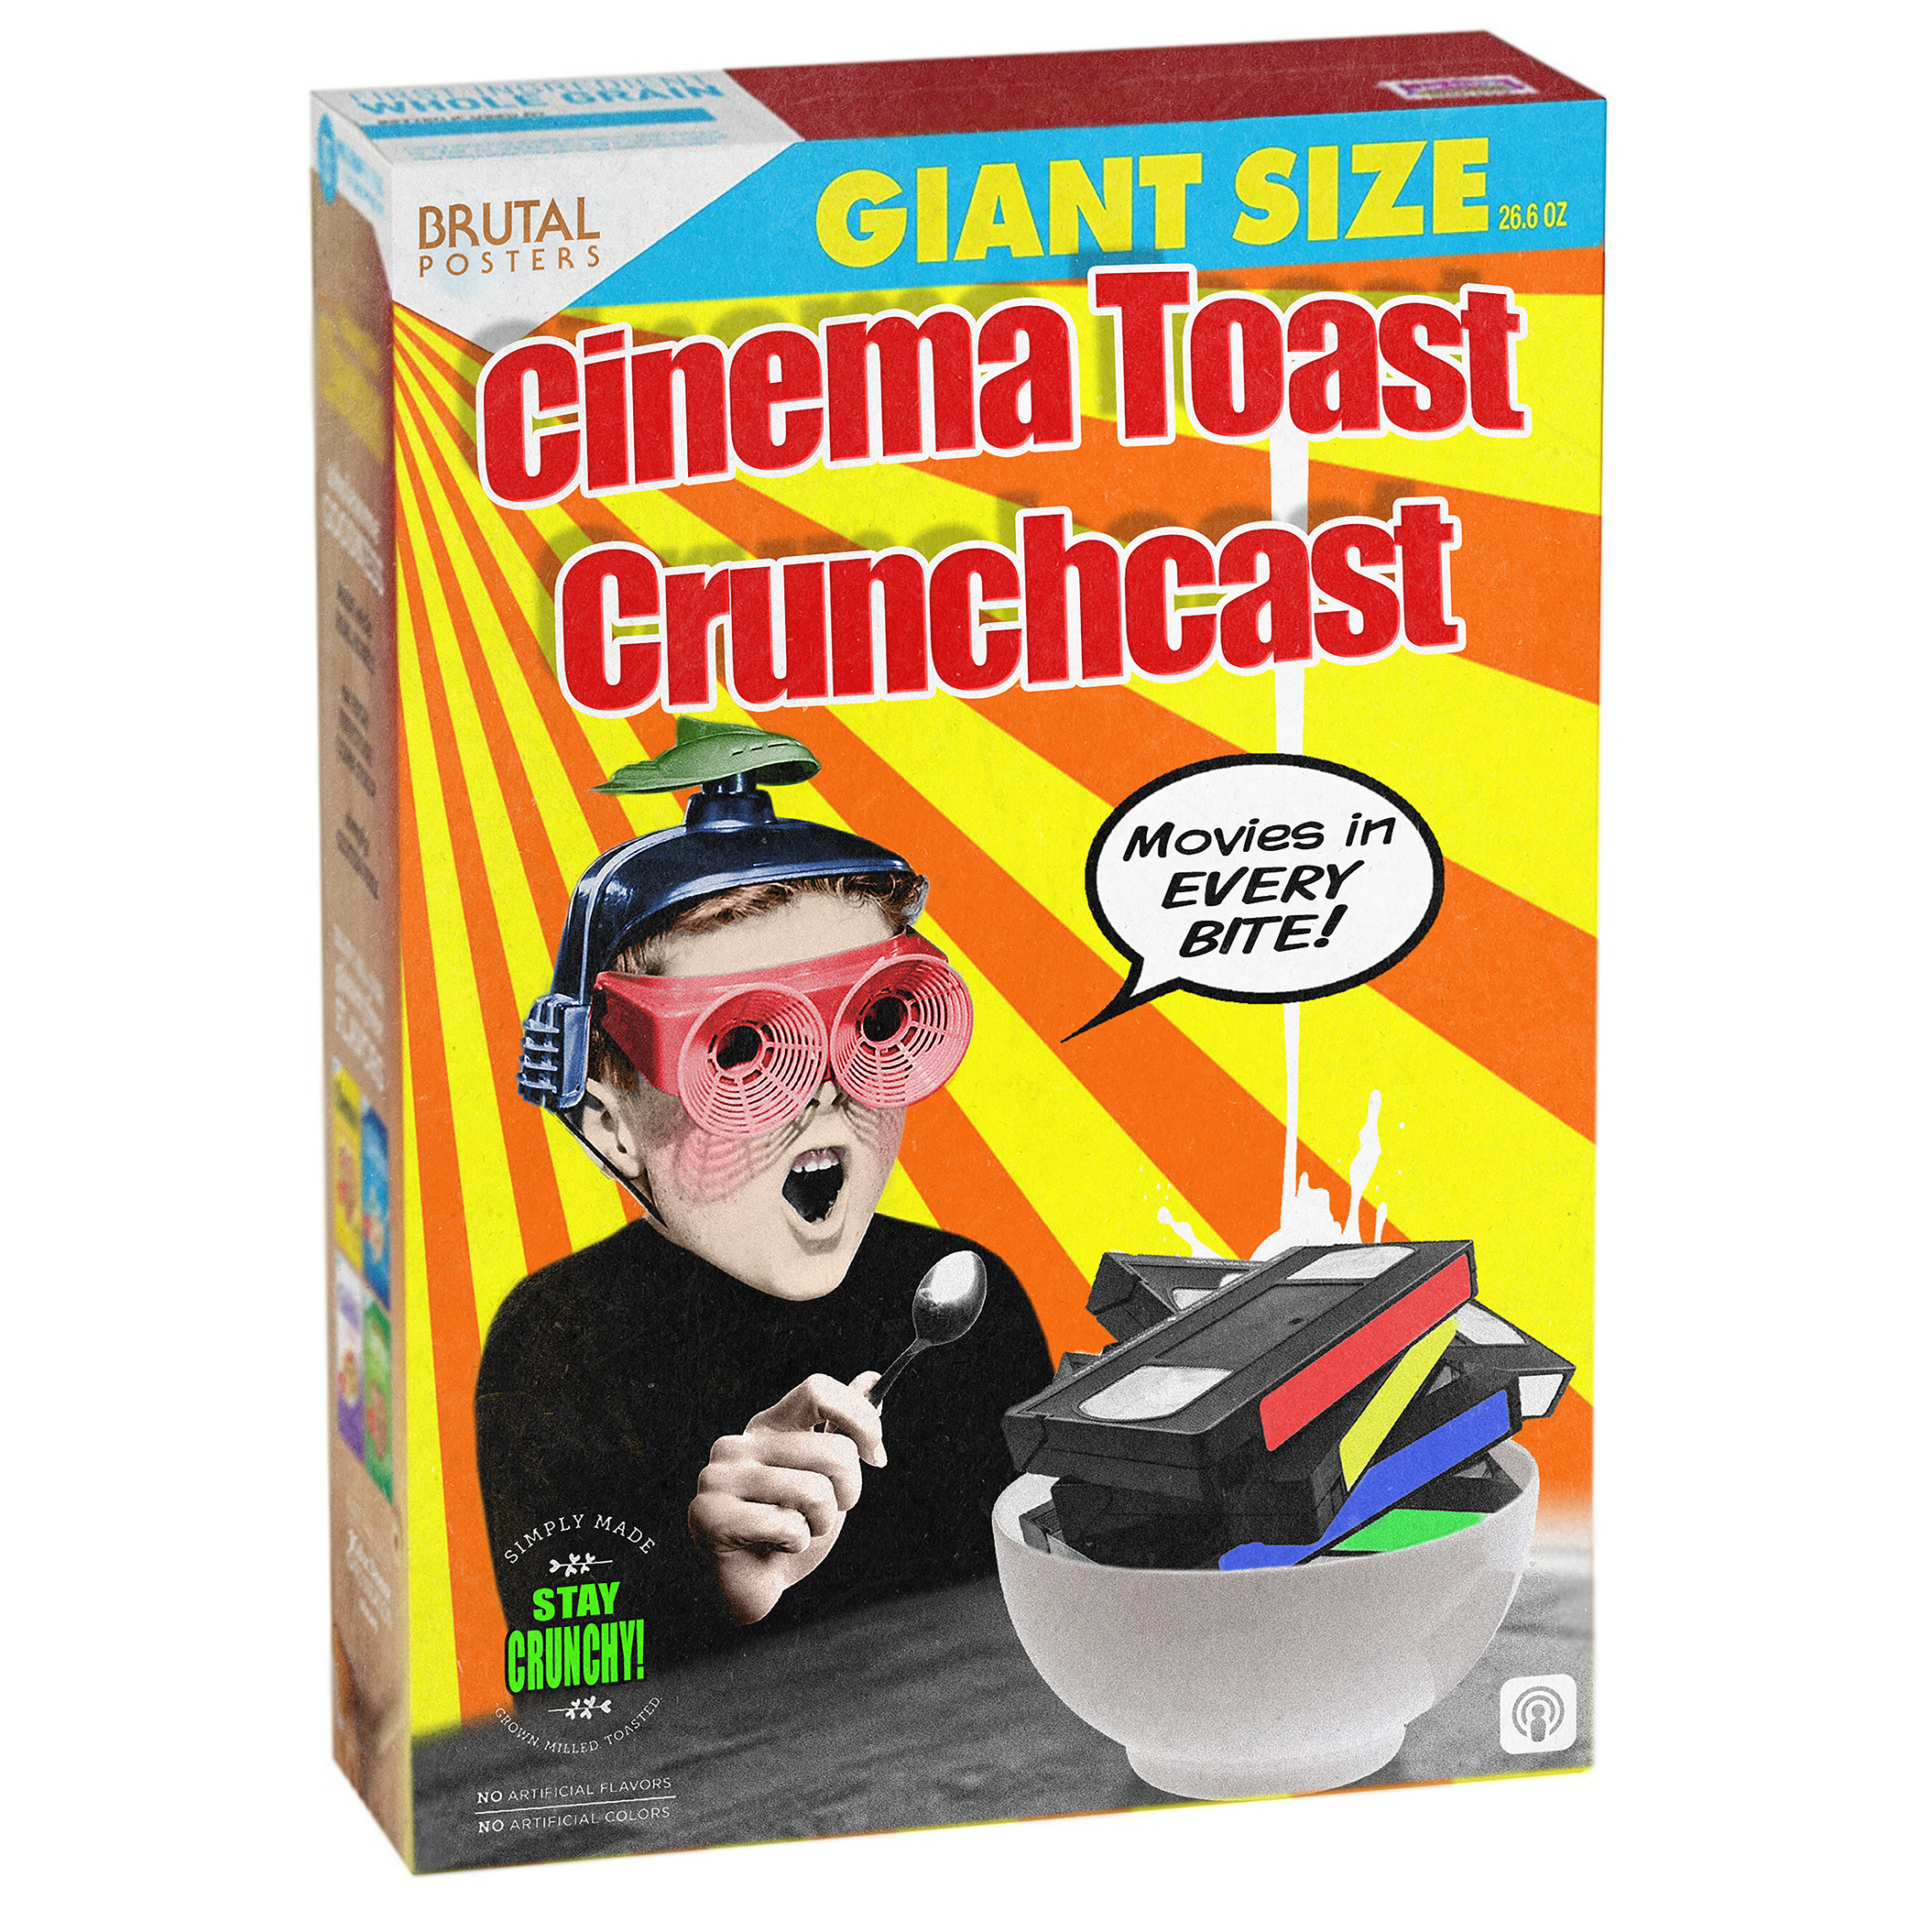 Cinema Toast Crunchcast - with Mike Flinchum & Ricky GloreApple Podcast